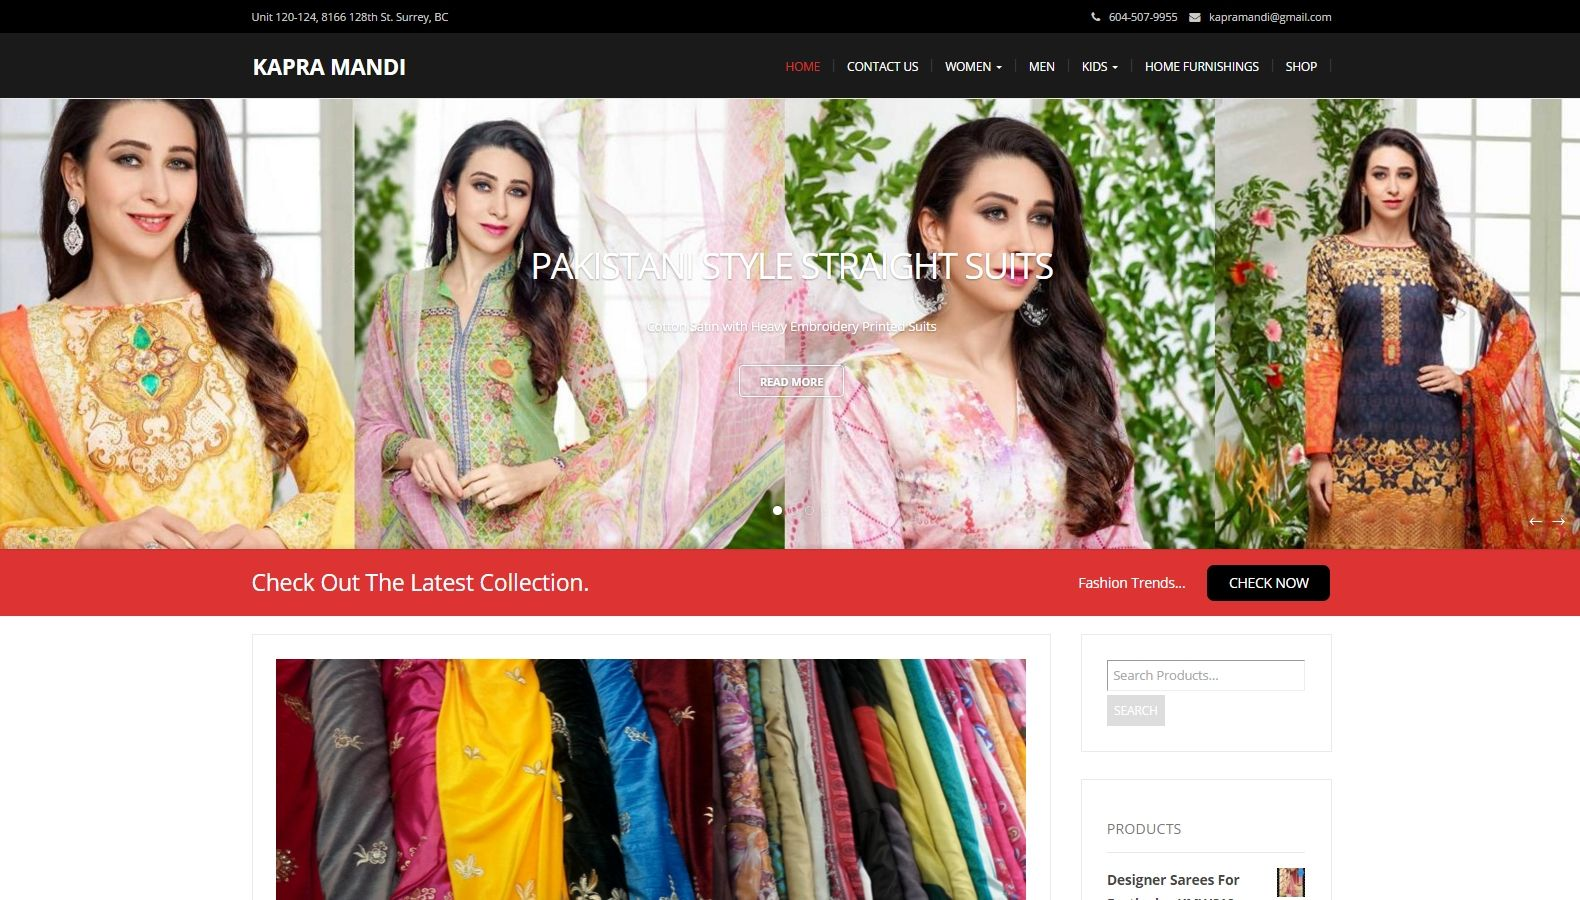 Kapra Mandi - Website Designing By SEOTeam.ca